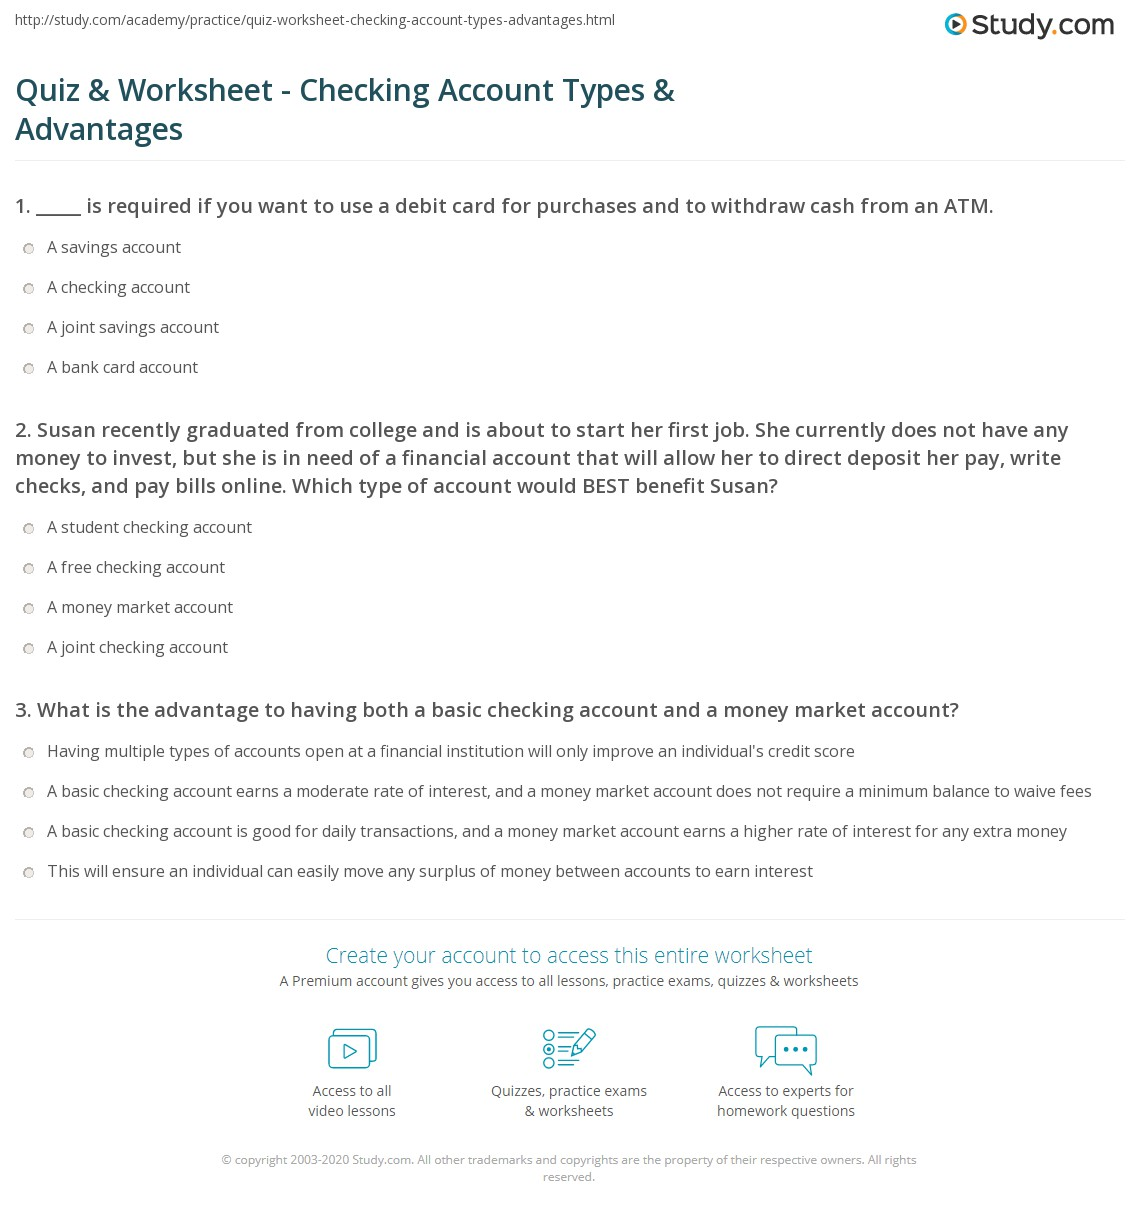 quiz & worksheet - checking account types & advantages | study